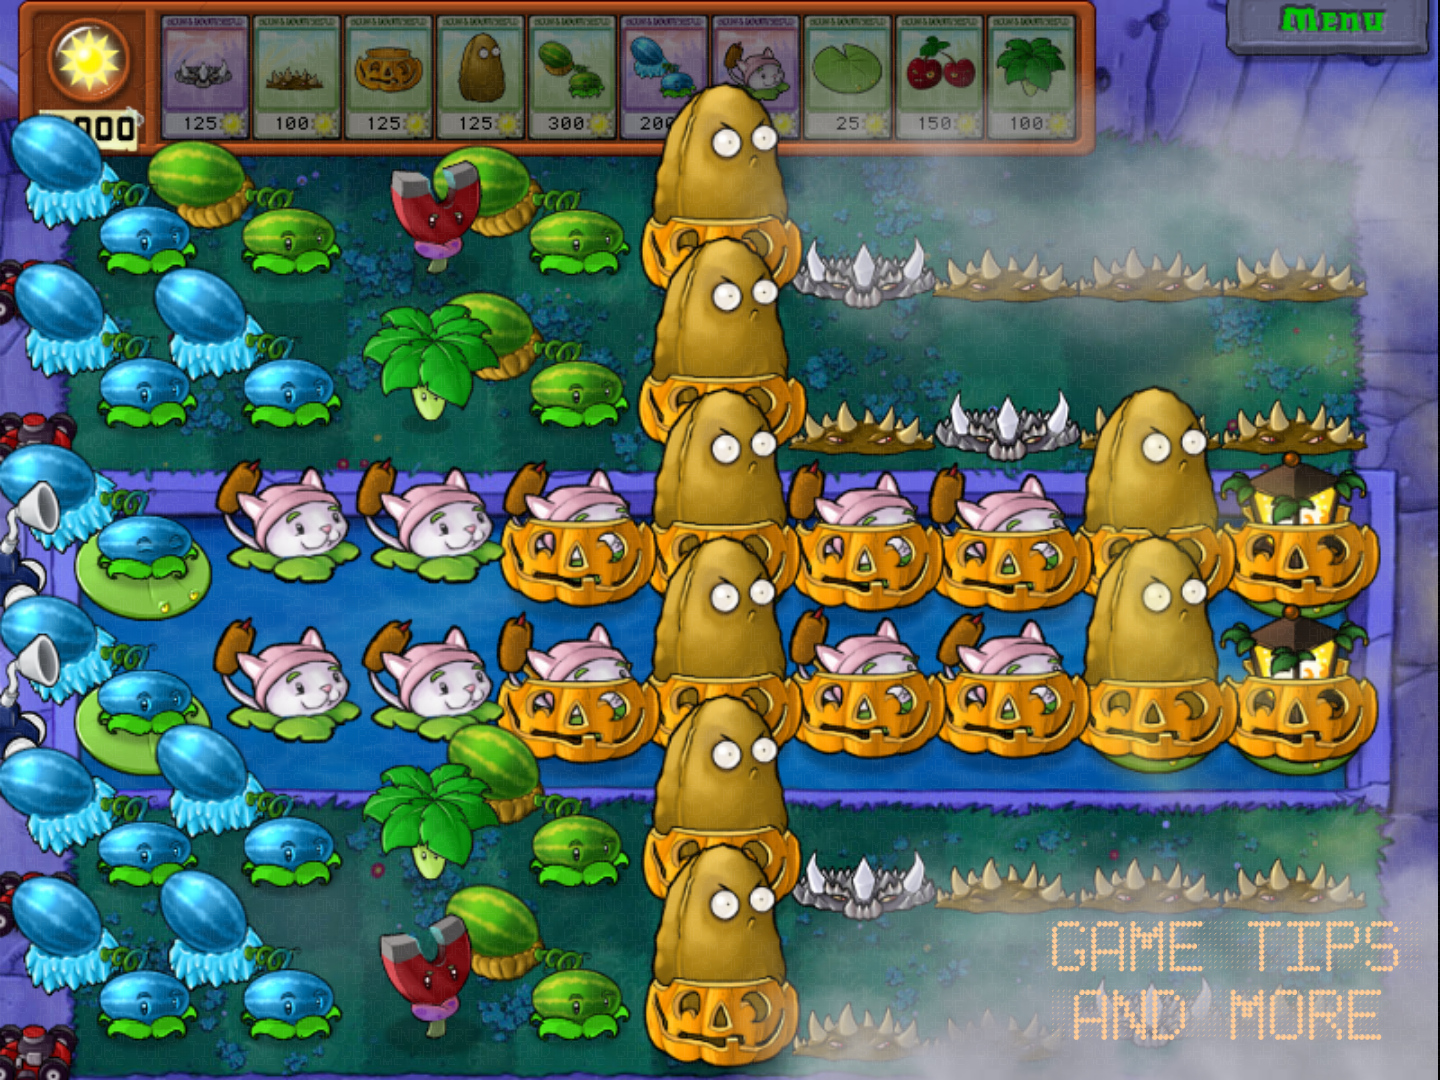 Download cheat engine game plants vs zombies tested by eninolef.